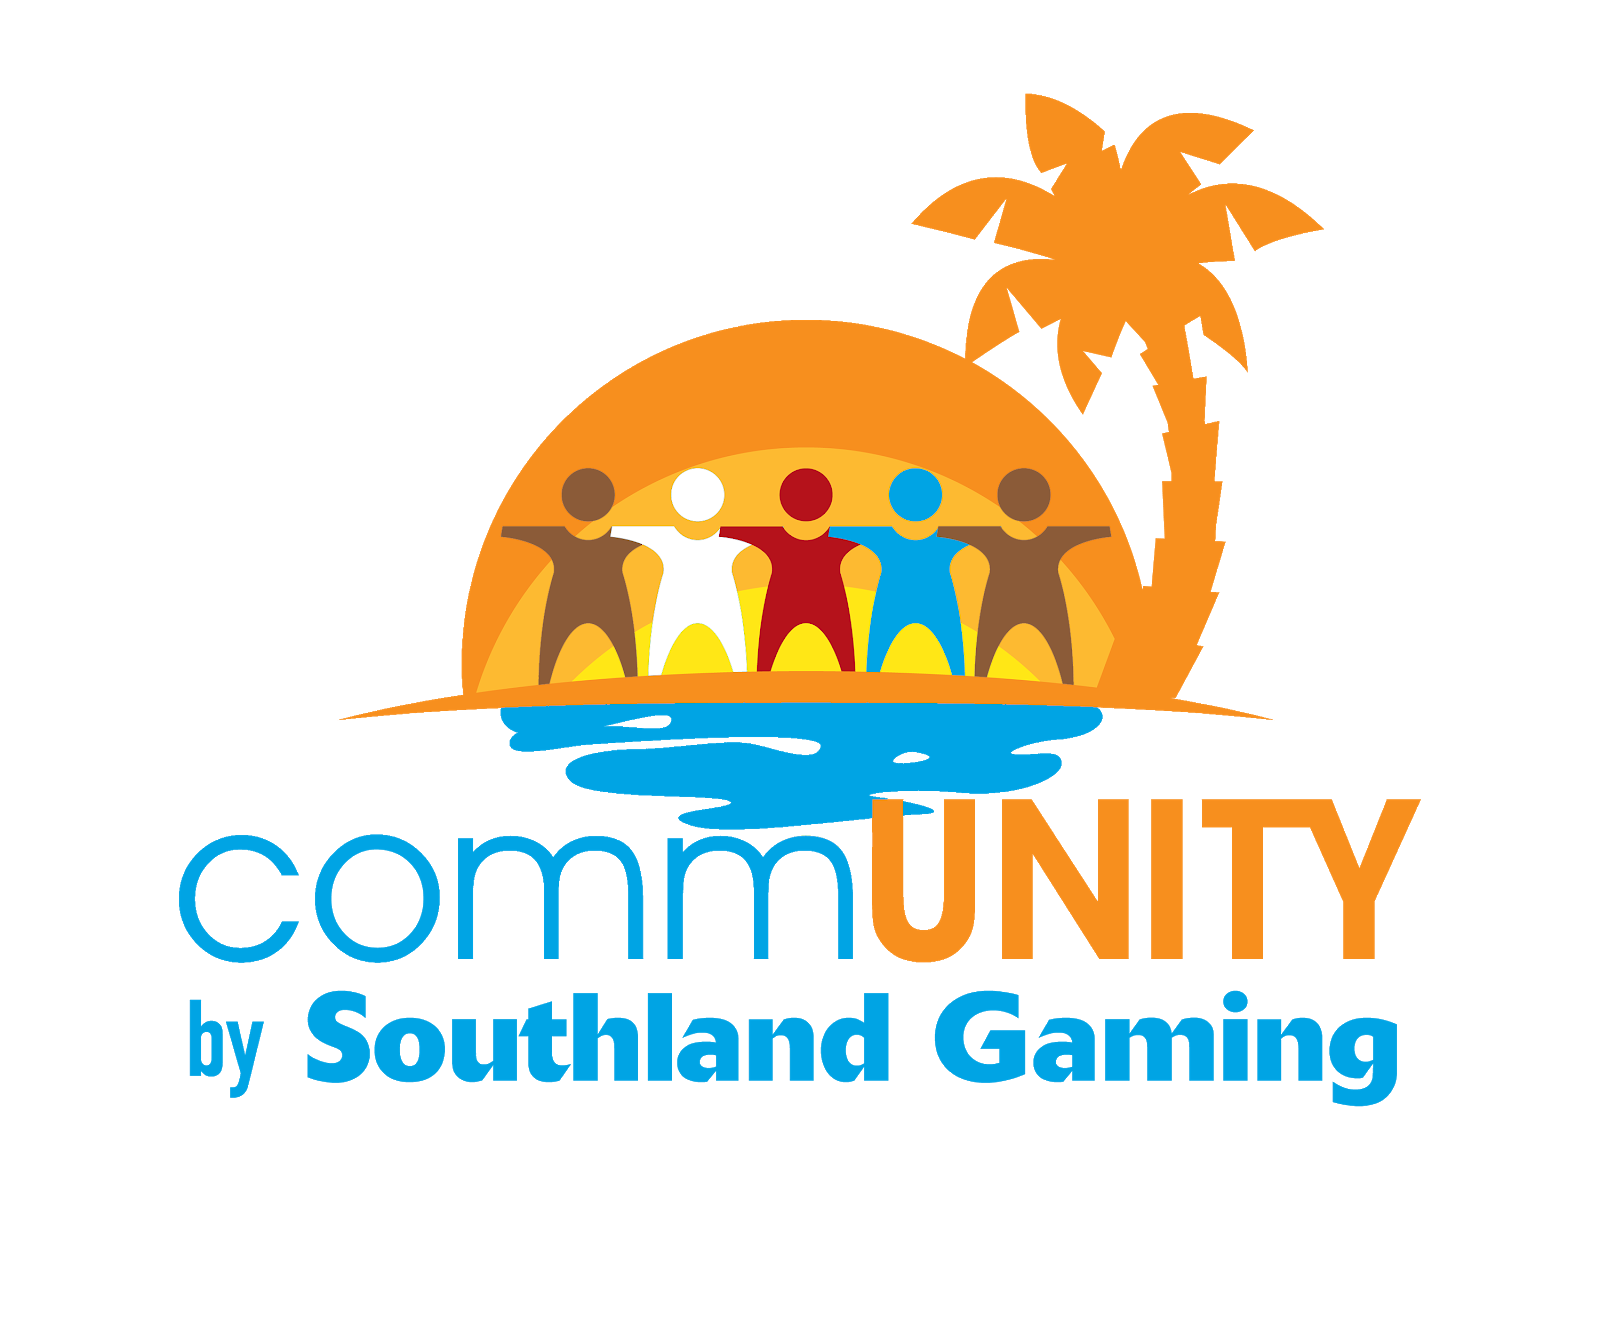 Community by Southland Gaming